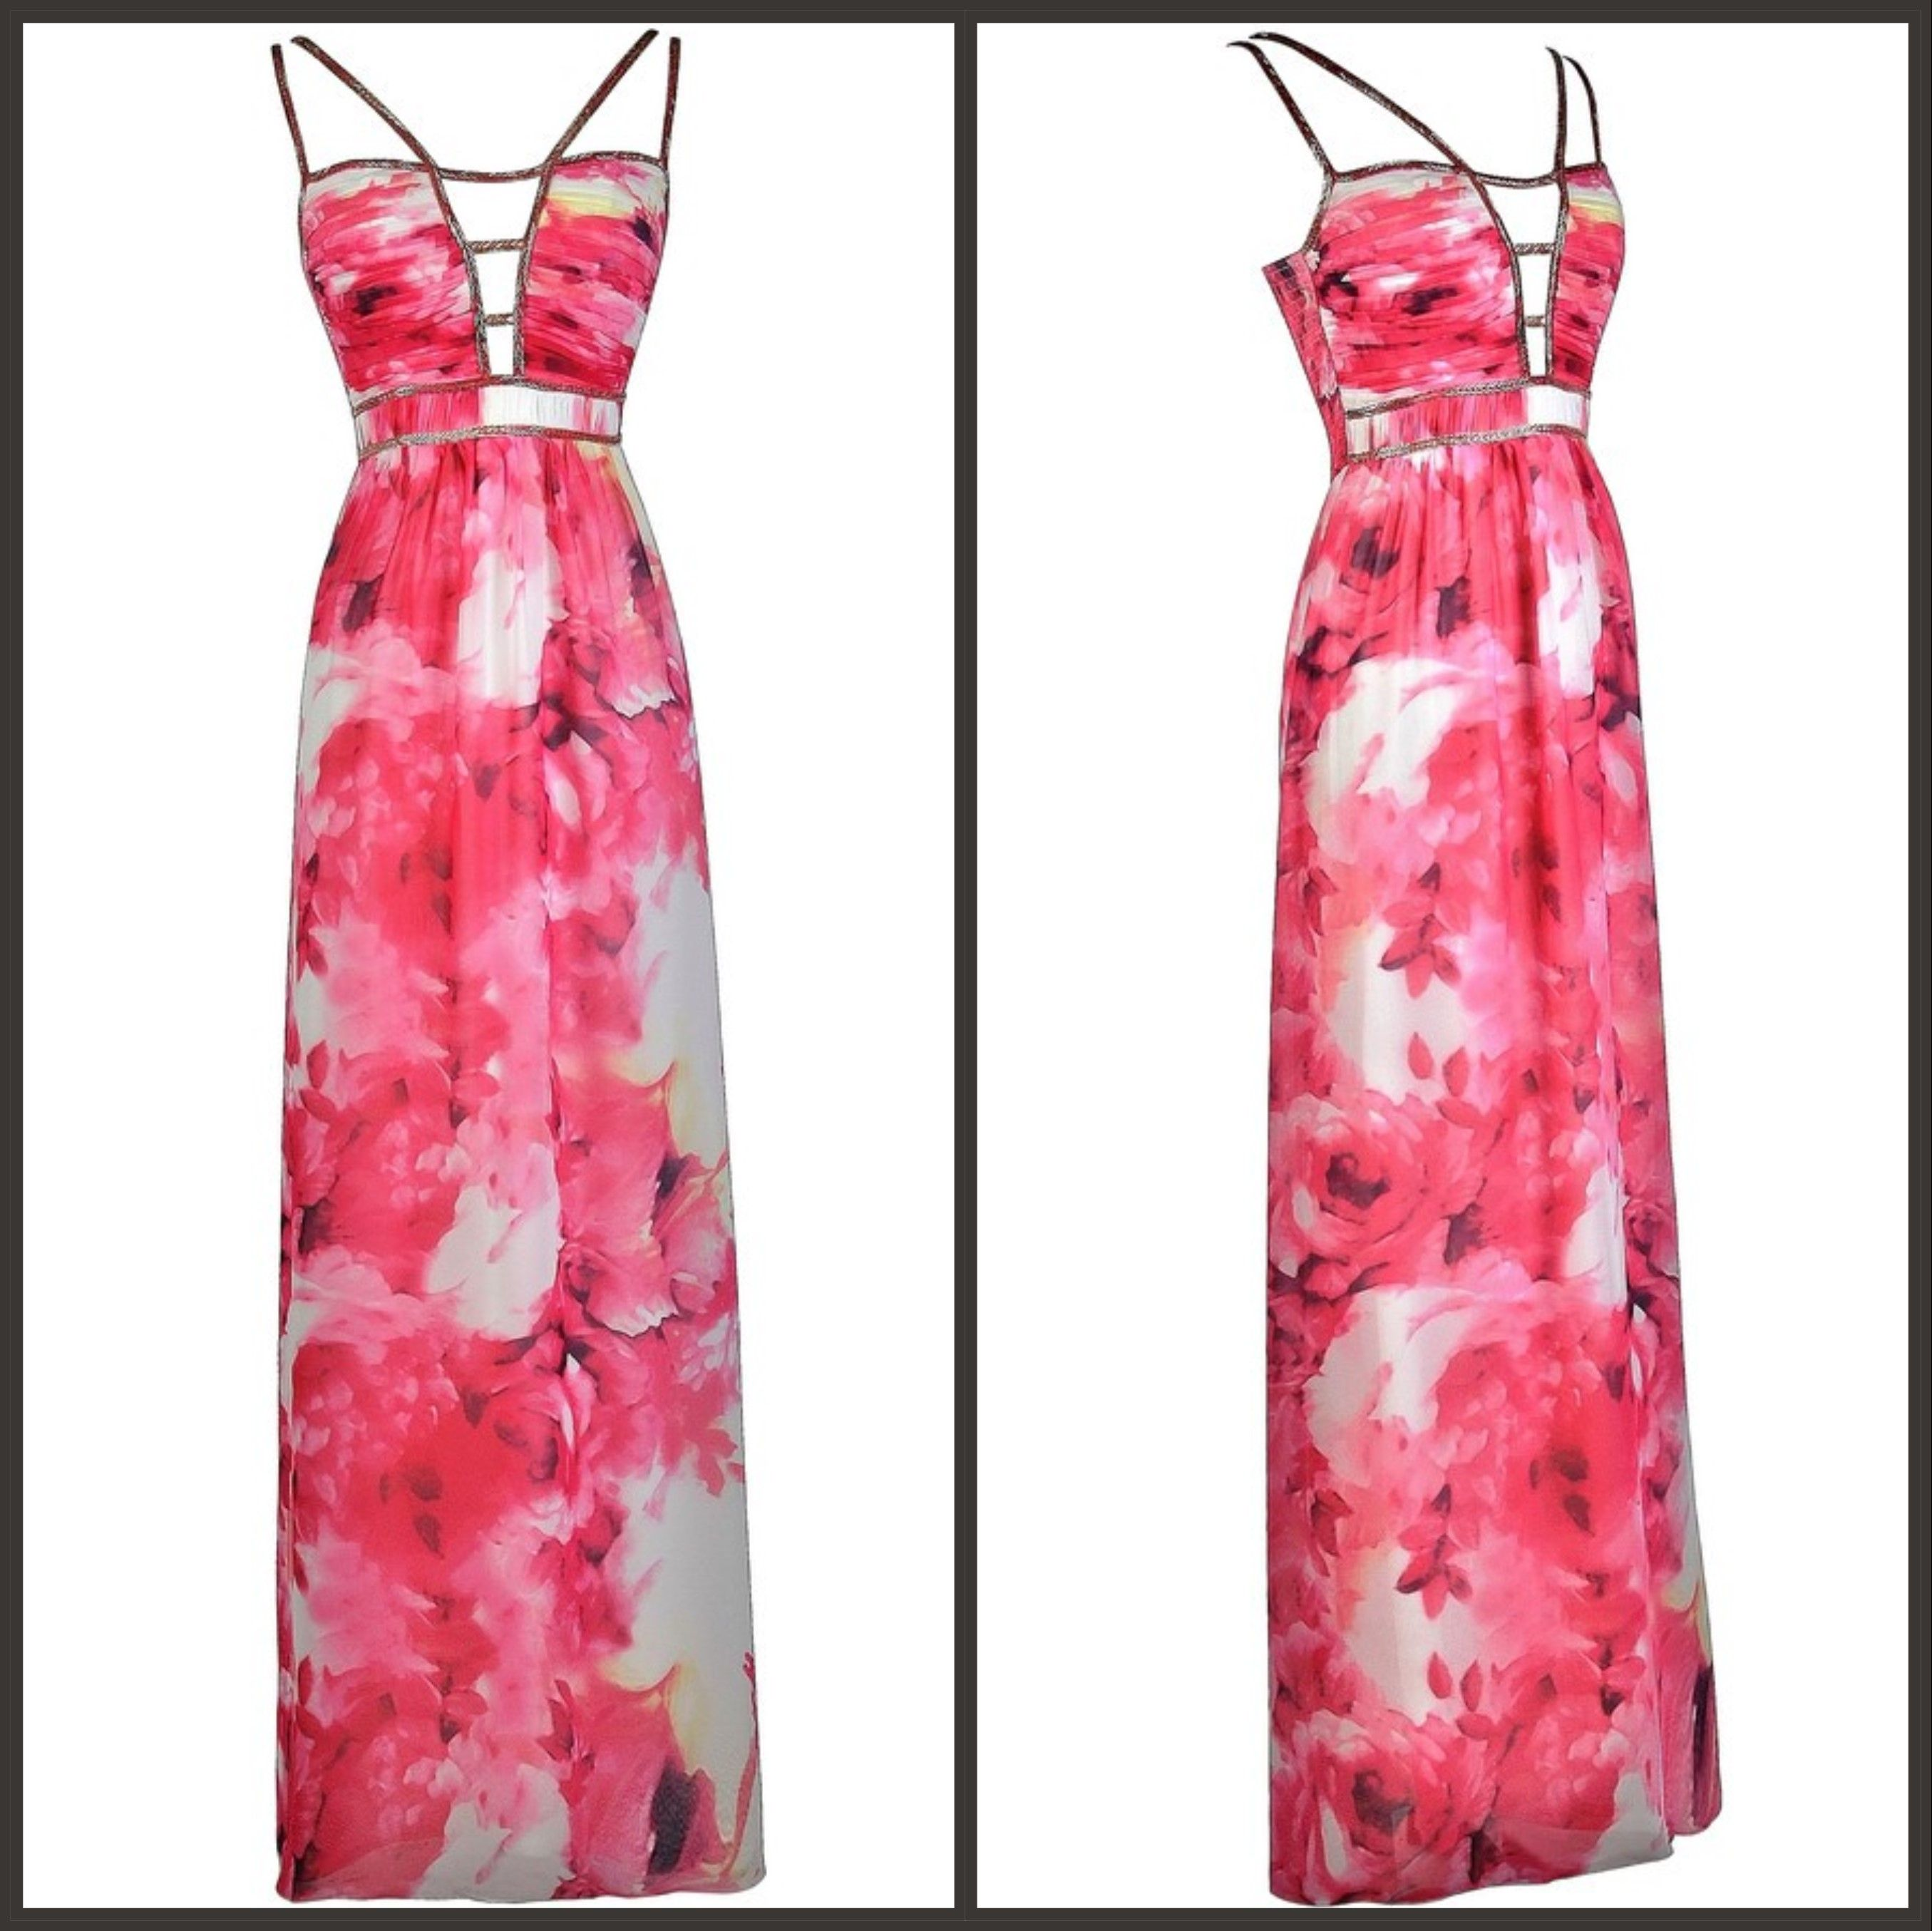 This pink watercolor maxi dress is perfect for your next formal